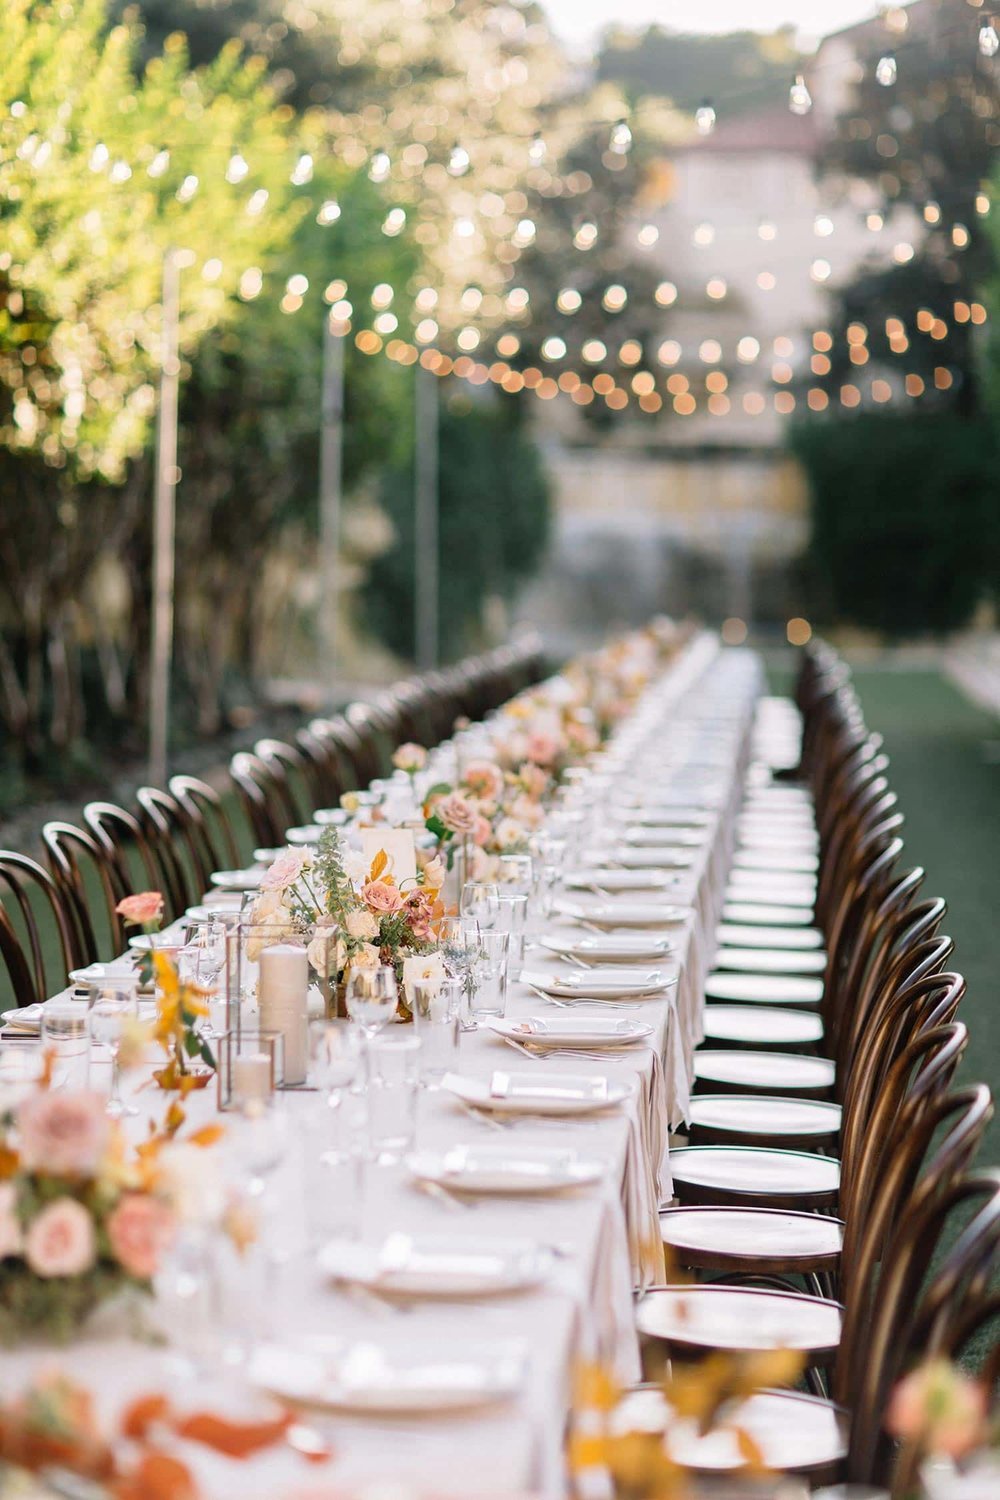 Flowers at wedding reception by Color Theory Collective